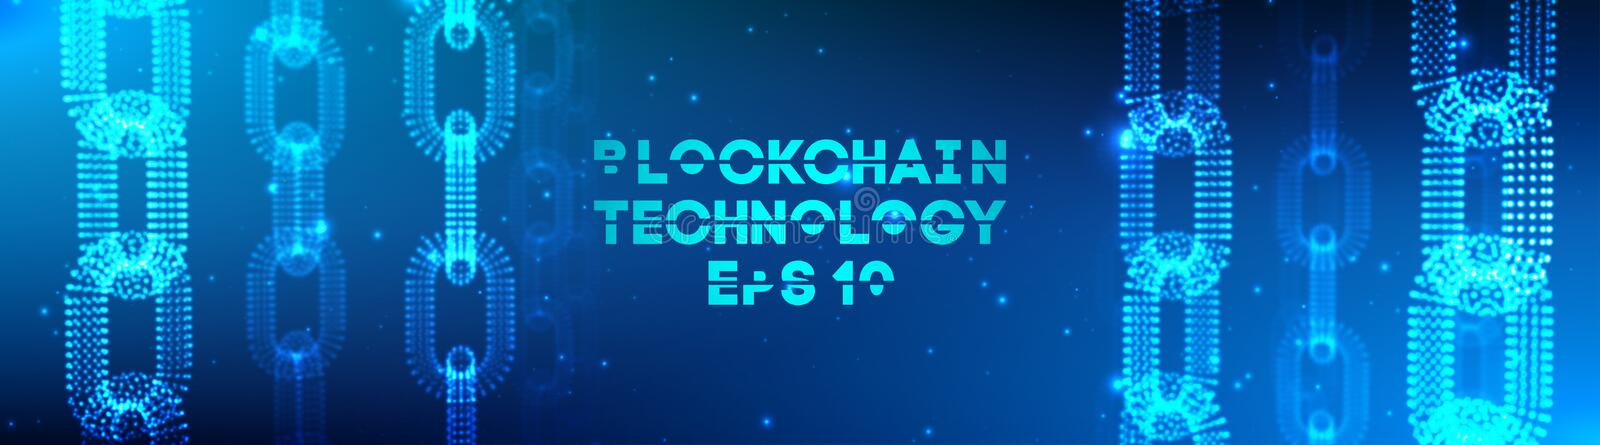 Blockchain technology background. Cryptocurrency fintech block chain network and programming concept. Abstract Segwit. royalty free illustration